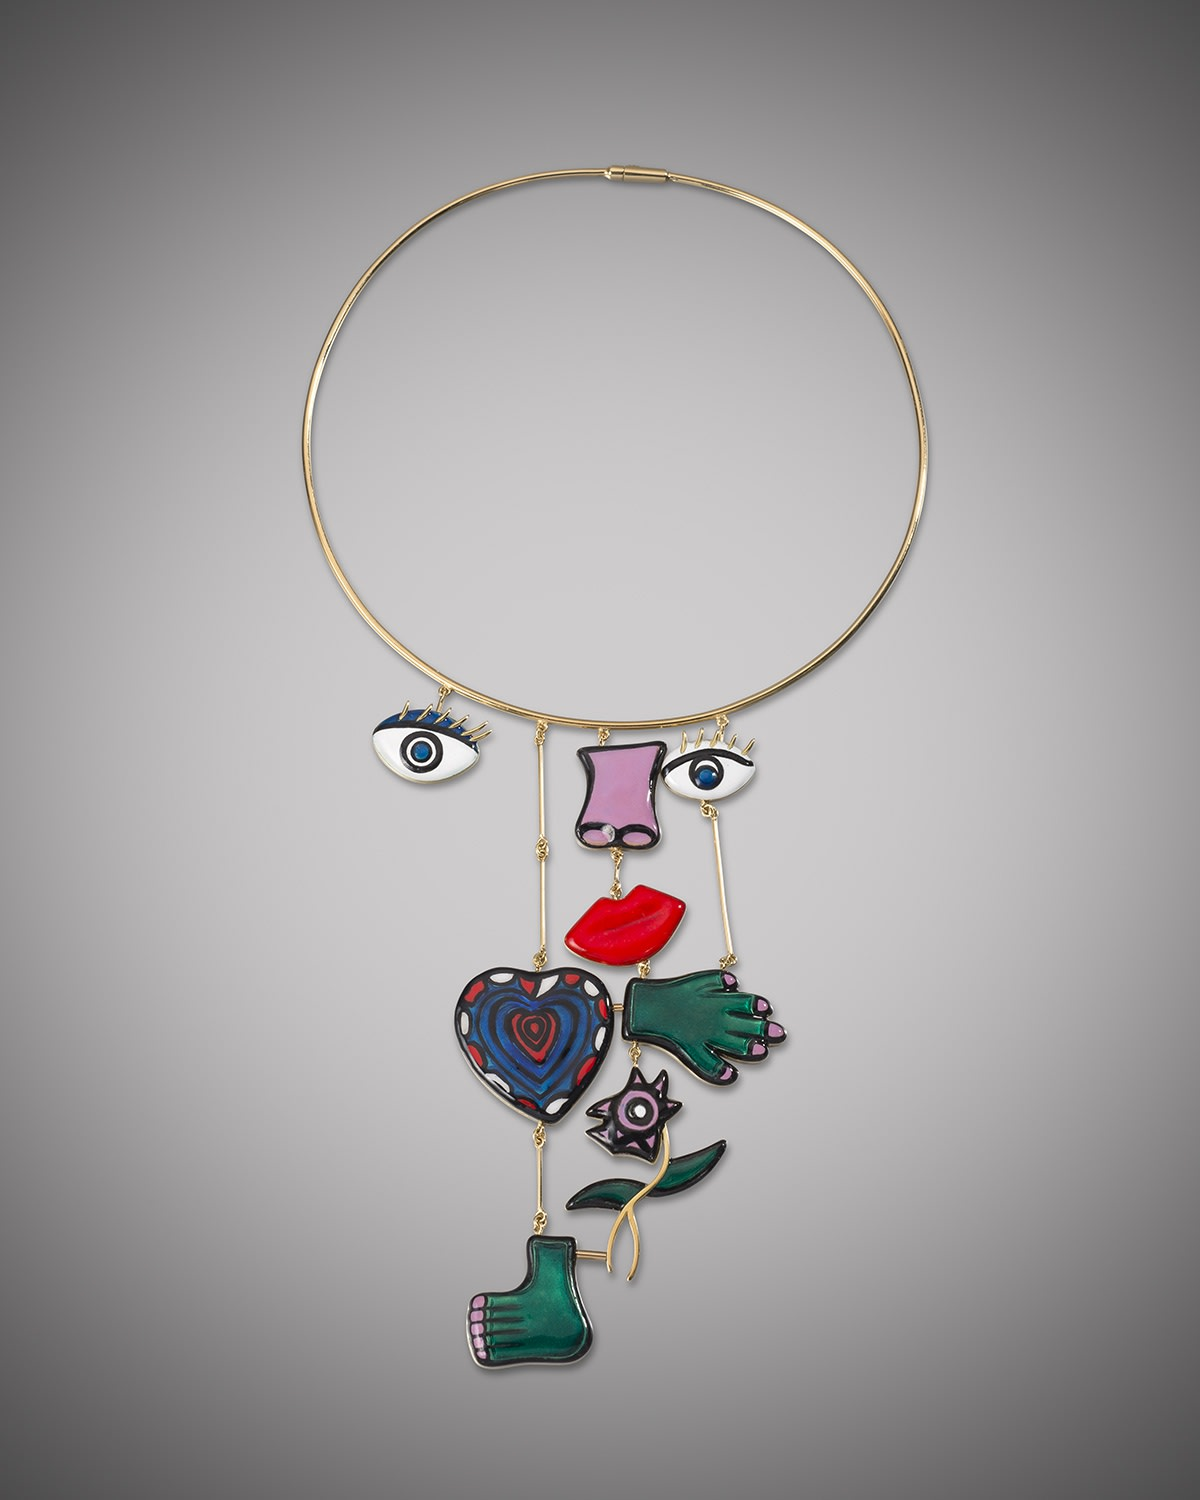 Assemblage Necklace, this work is a continuation of the edition started in 1974, completed in 2015